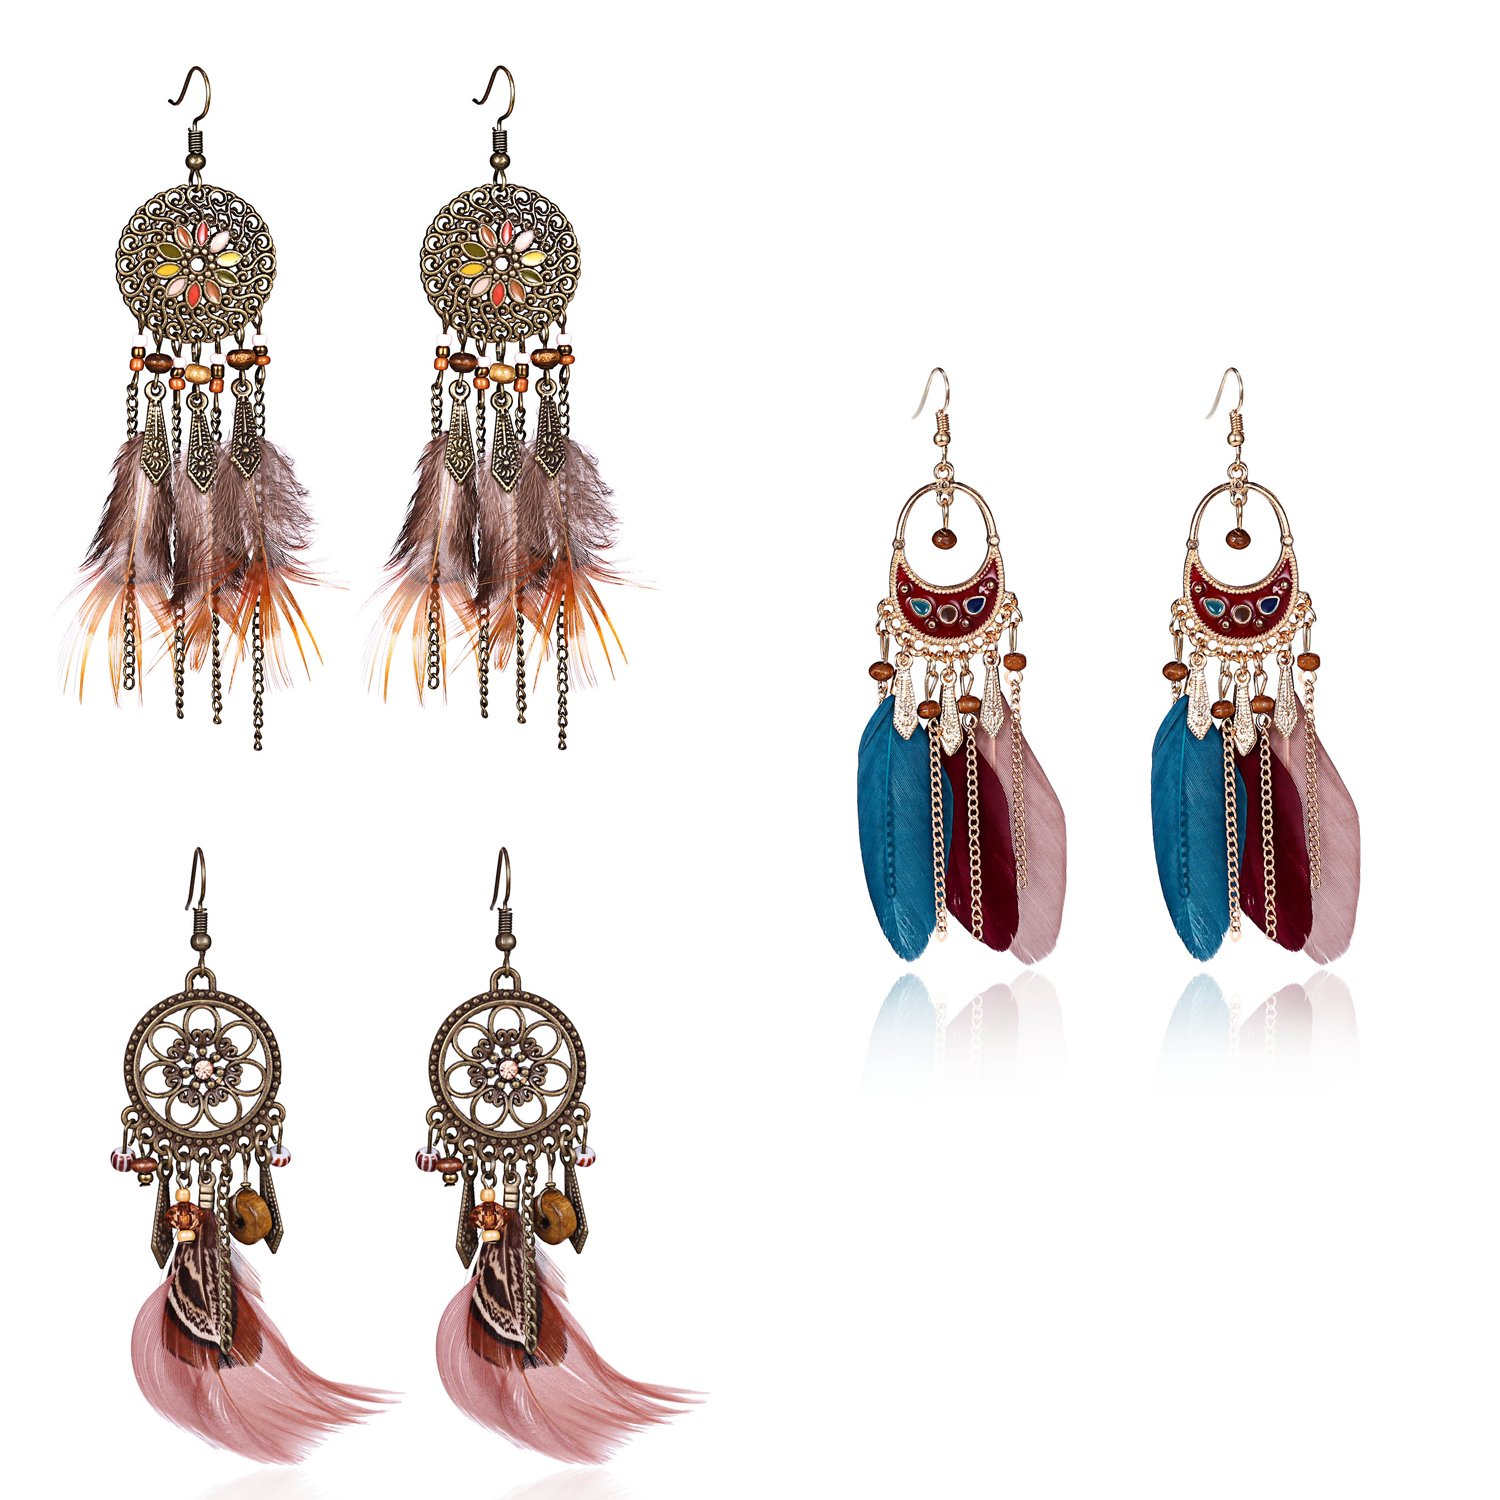 Bohemian Long Tassel Feather Earrings - Punk Vintage Real Feather Handmade Dangle Earrings Jewelry for Gift (Style 4)